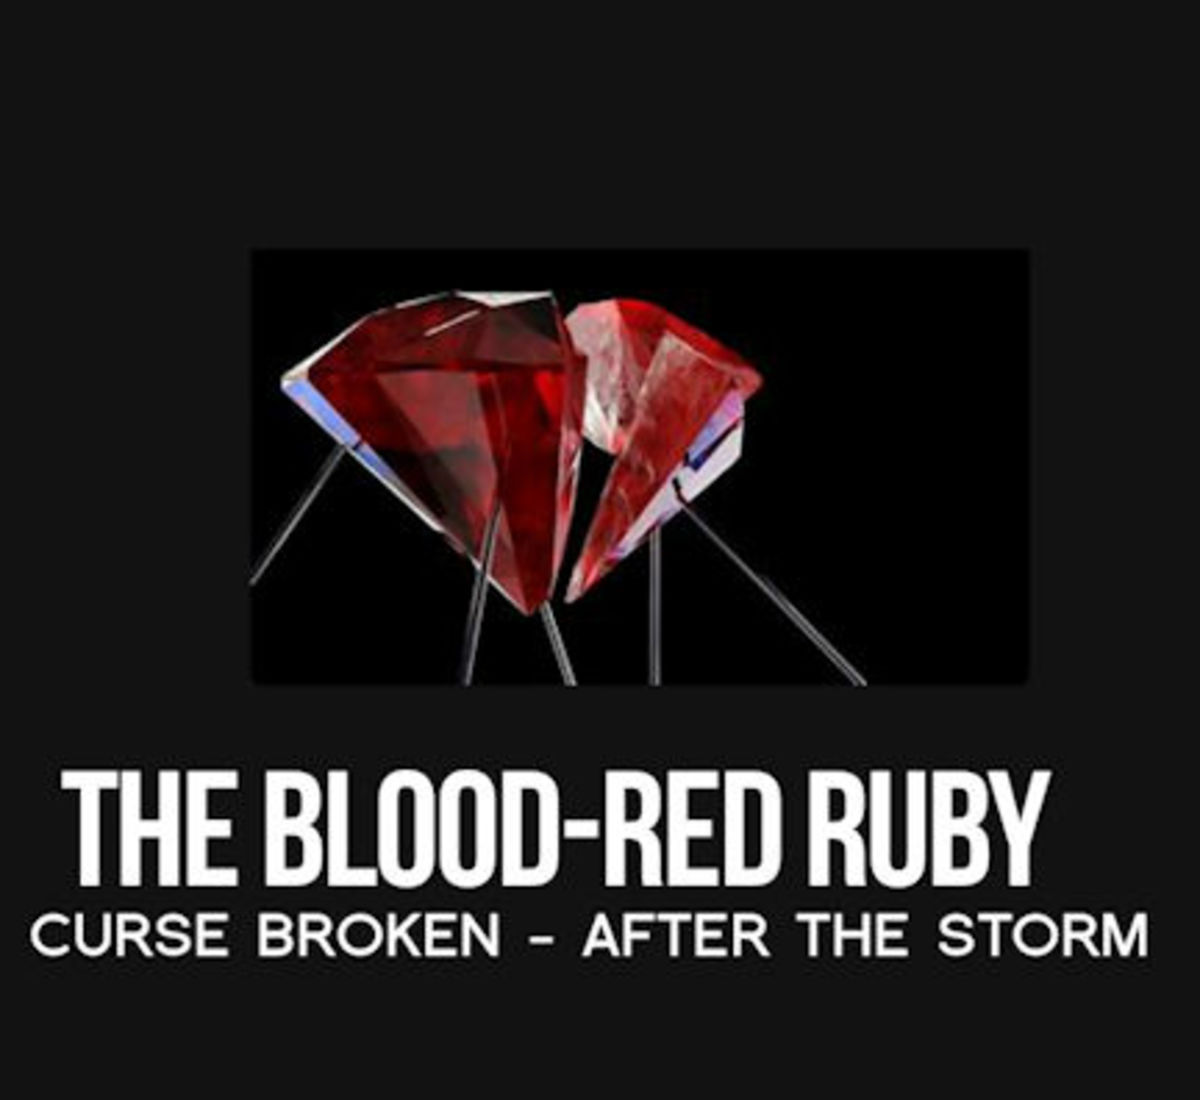 The Blood-Red Ruby: After the Storm 18